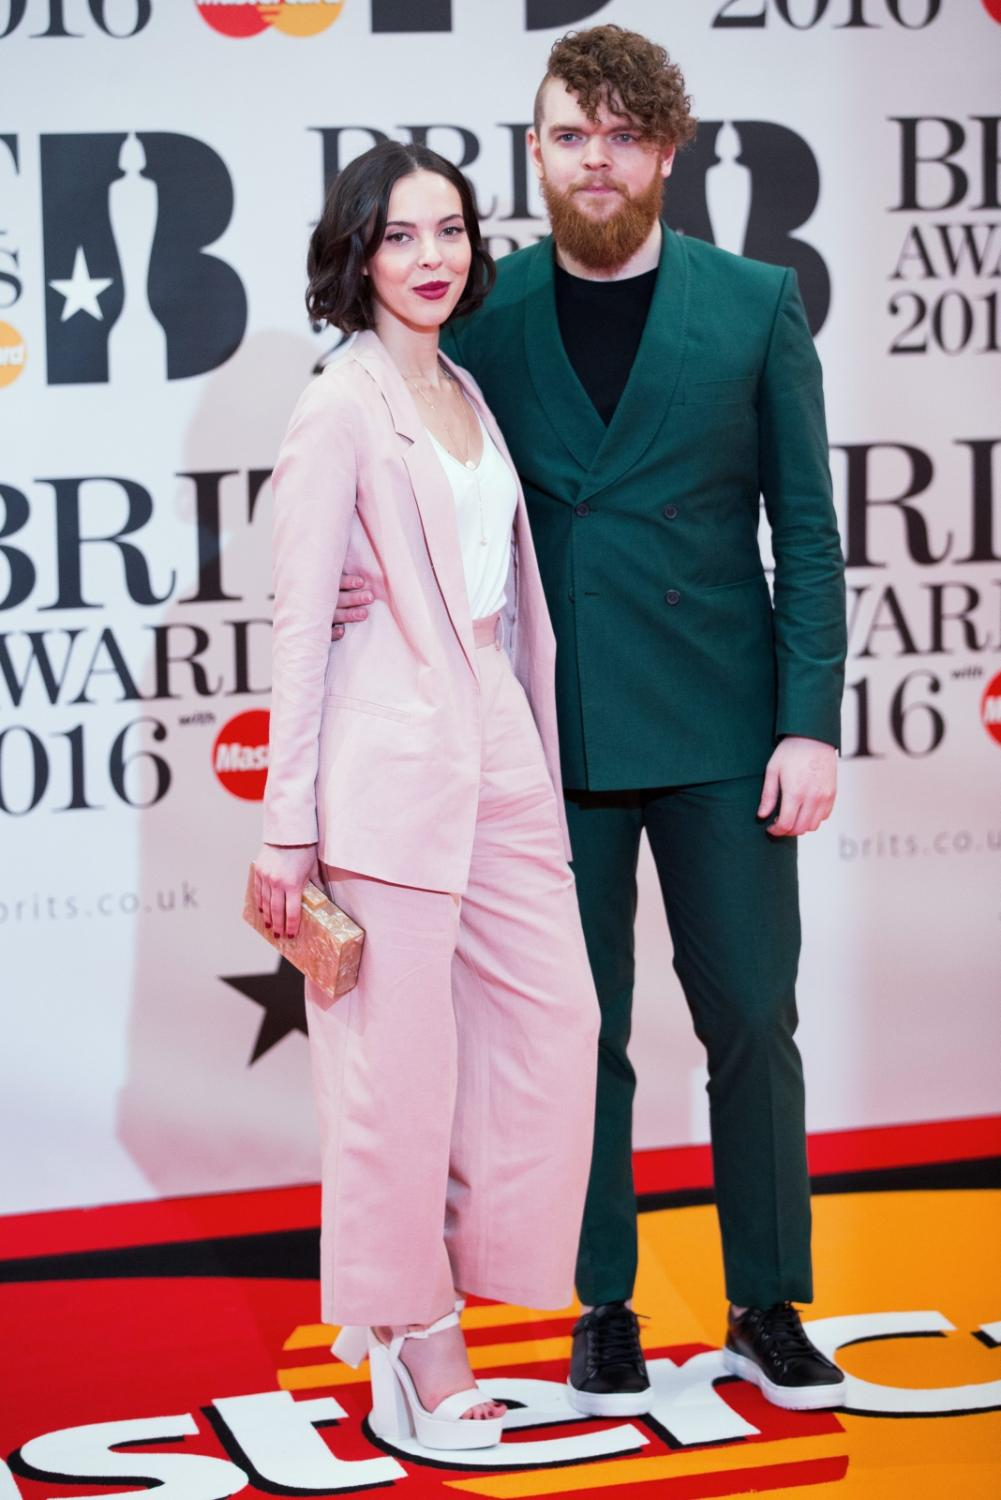 Jack Garratt z partnerką na gali Brit Awards 2016